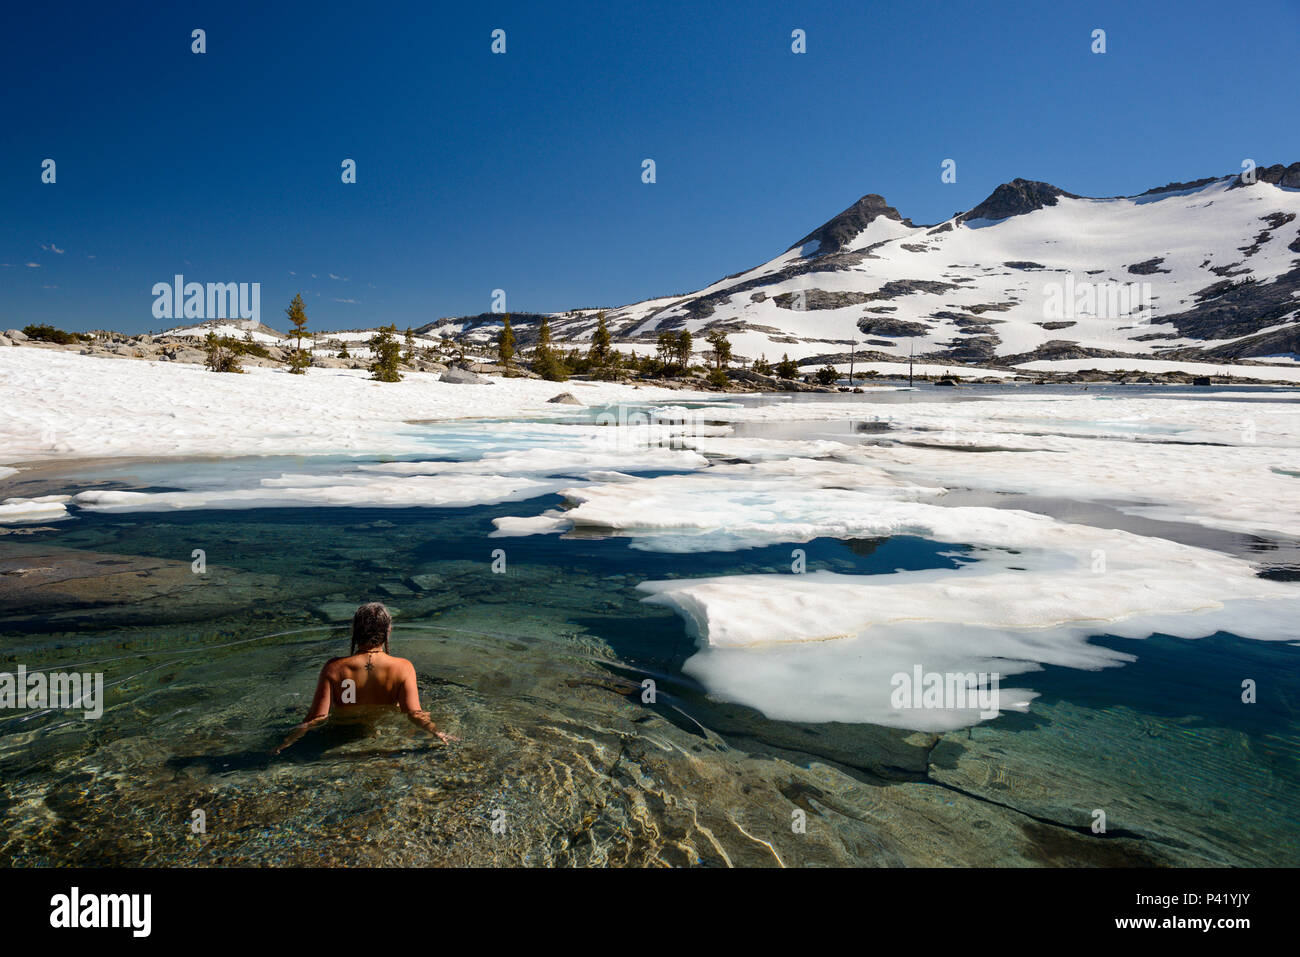 A woman swims in the ice covered waters of Lake Aloha in the Desolation wilderness area in south lake tahoe. Stock Photo